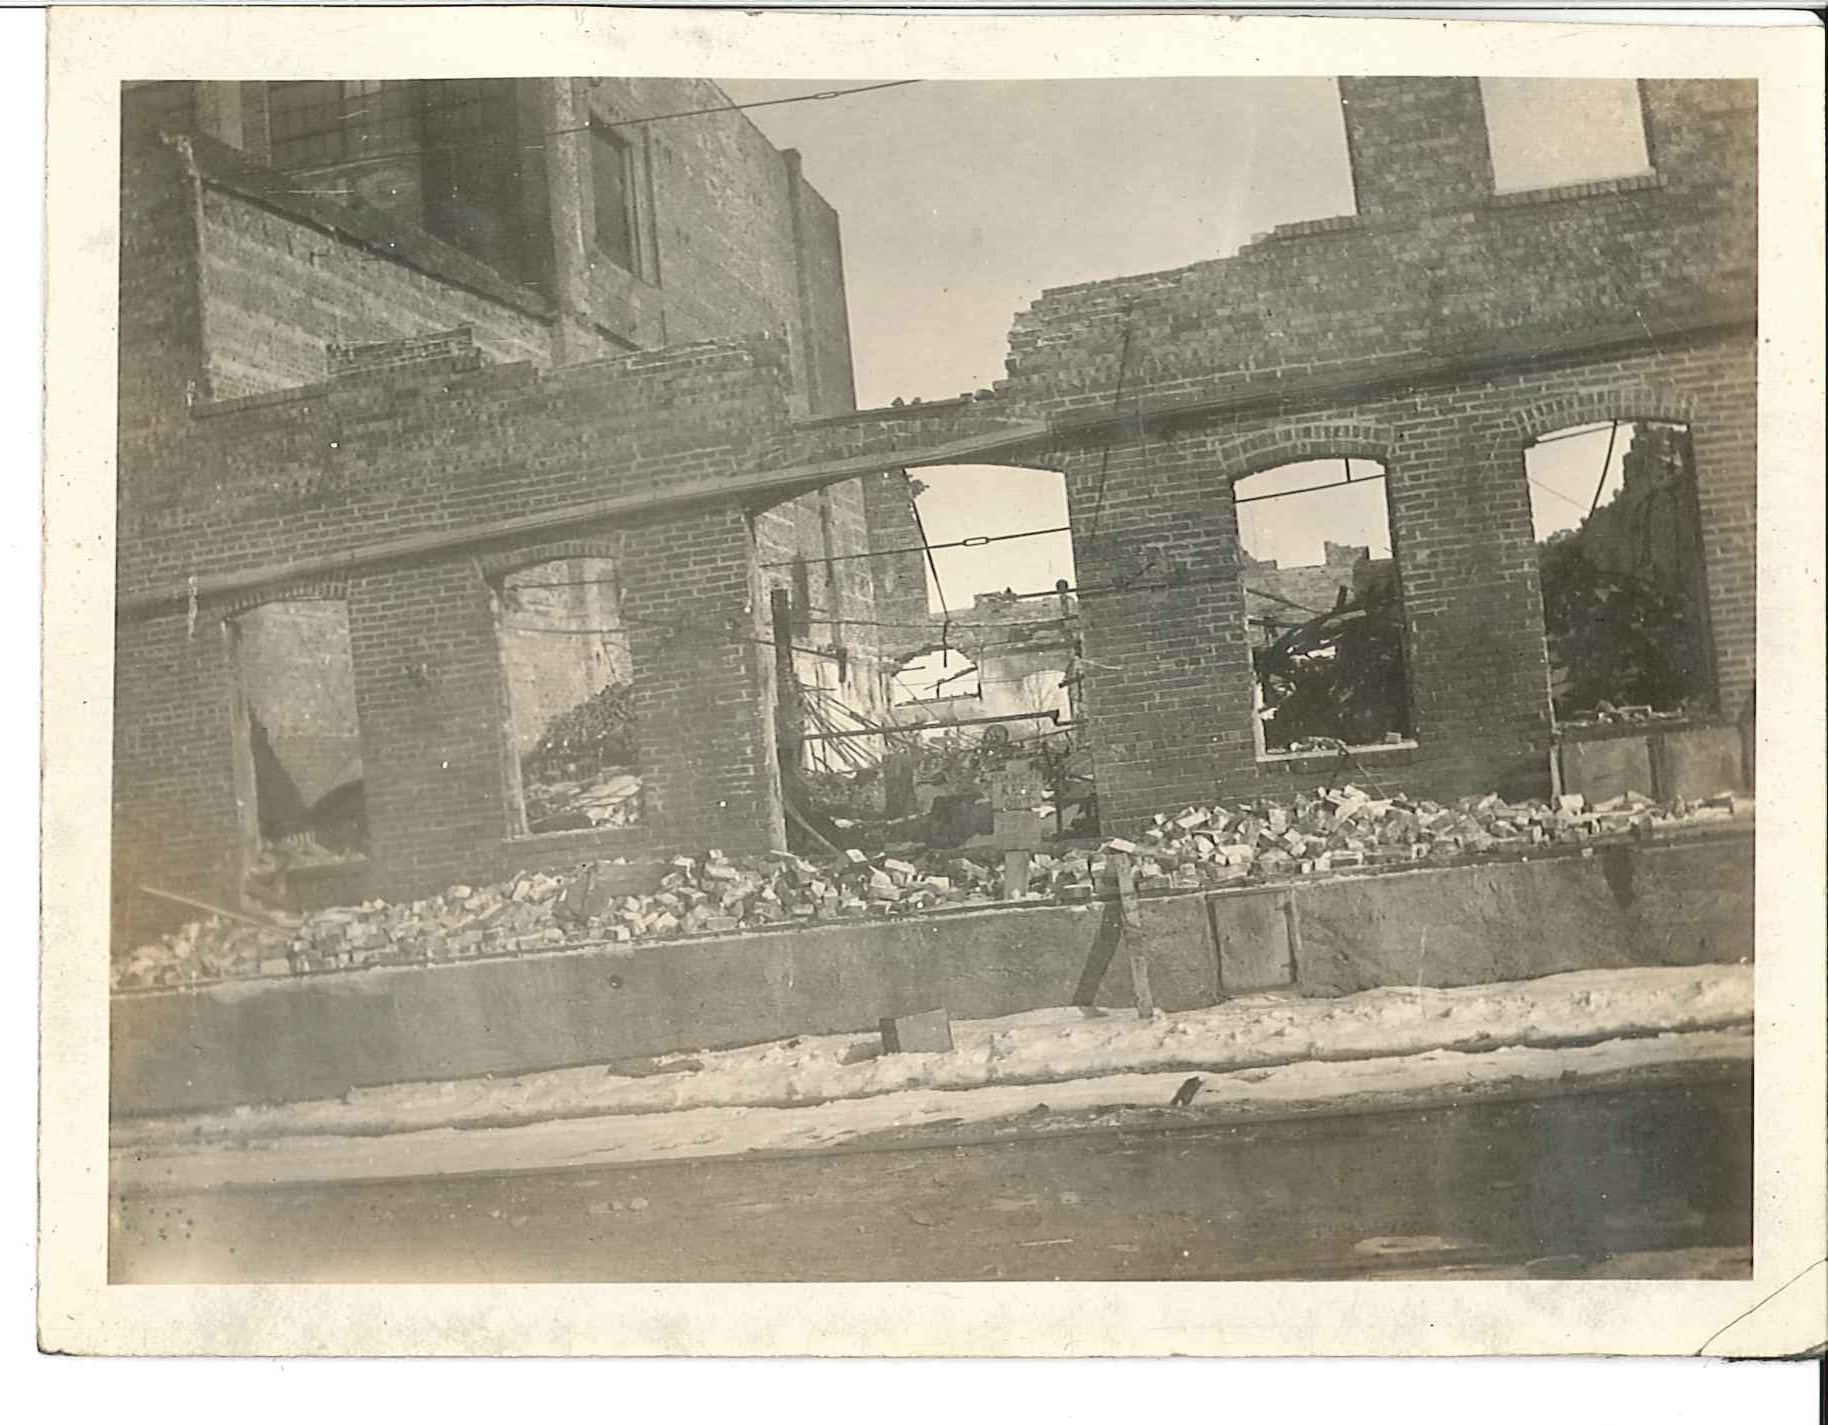 Canning Plant Fire 1929 (2)